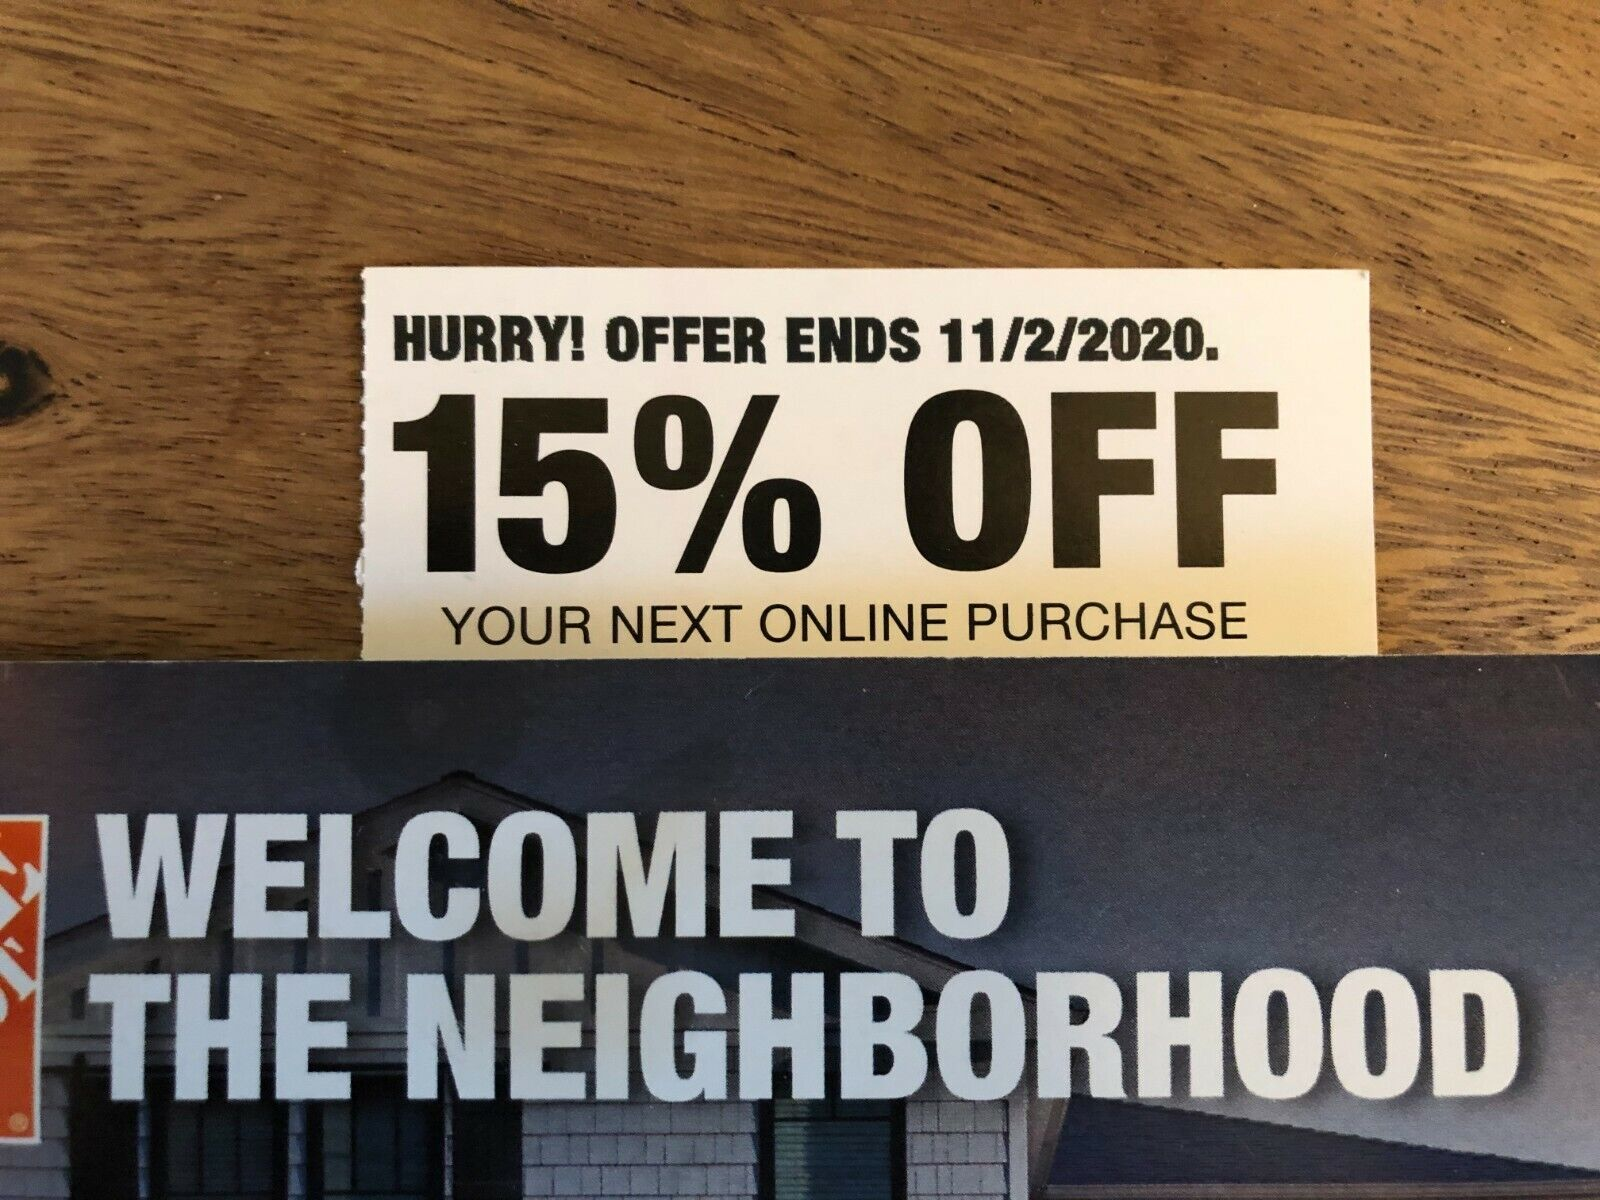 ONE 1X Home Depot 15 OFF Online Coupon Save Up To 200 FAST--SENT - $50.00